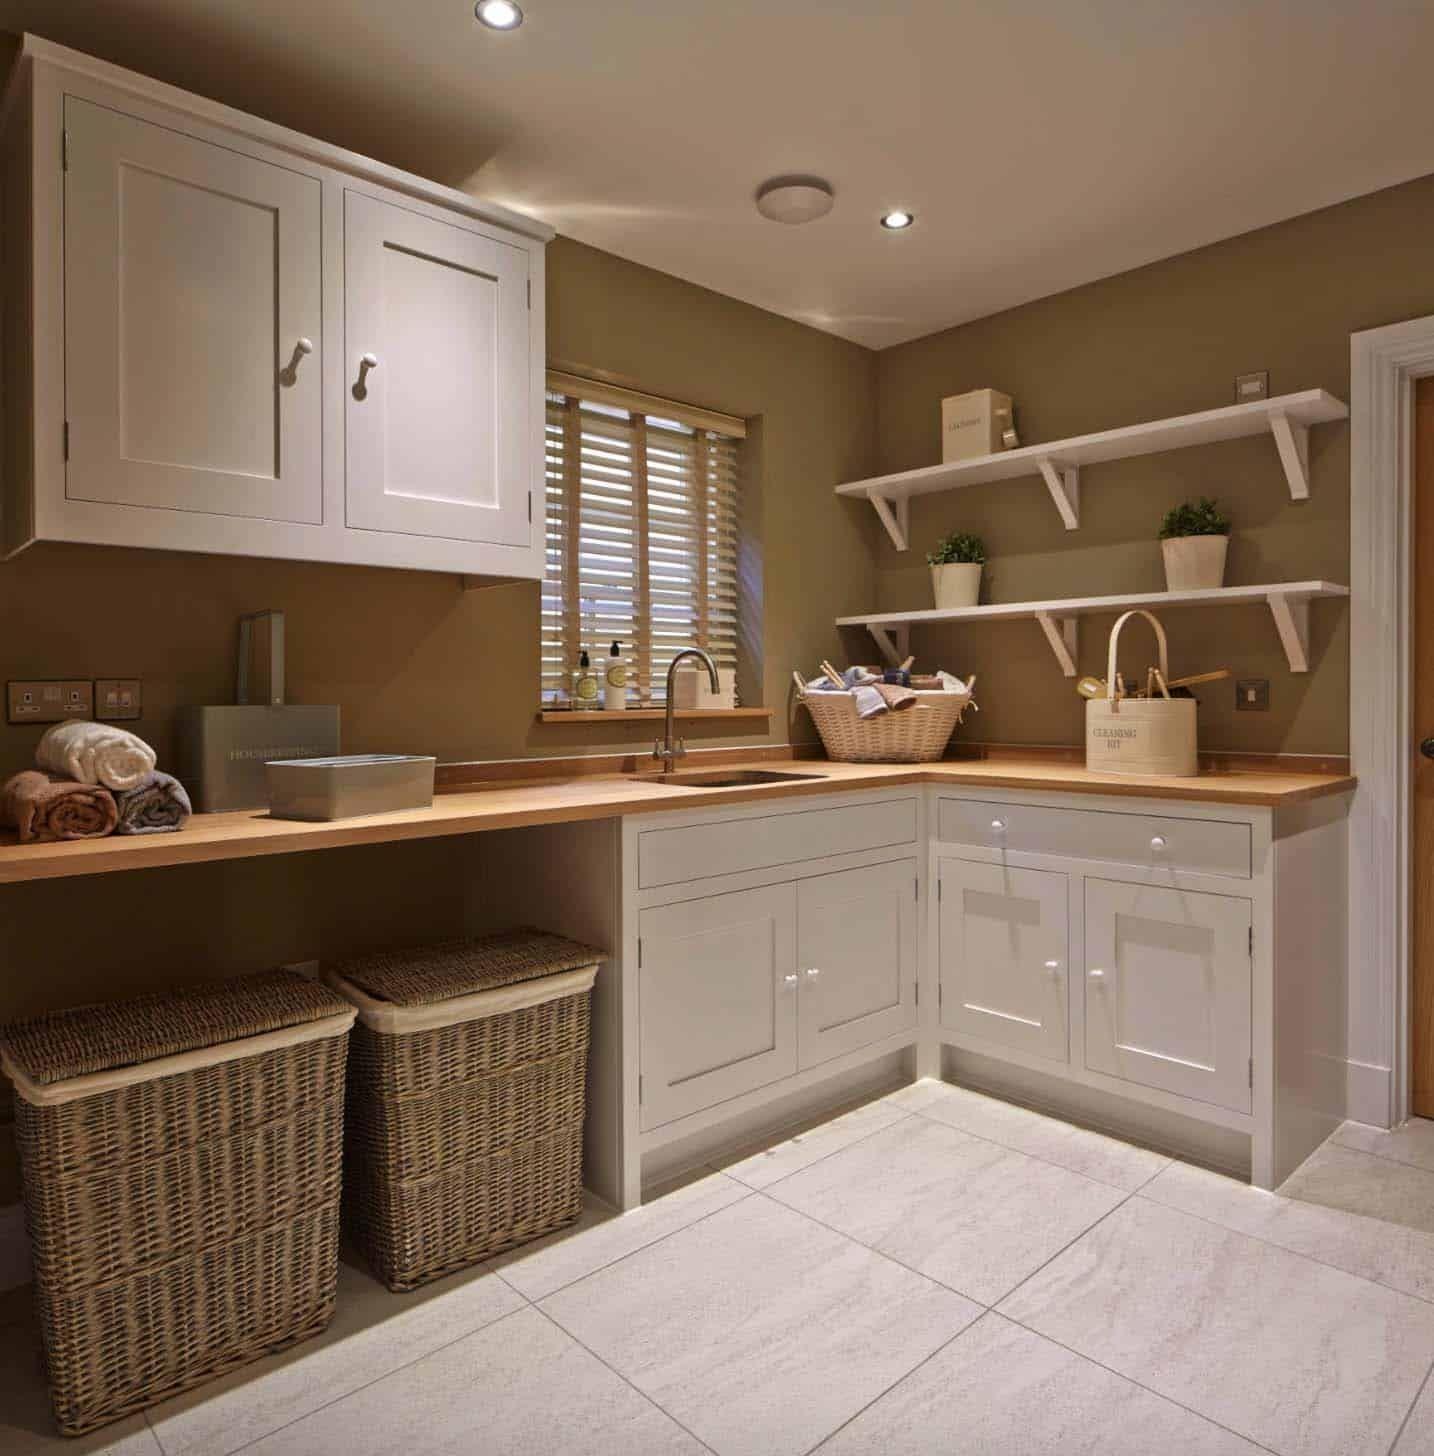 22 DIY Laundry Room Makeover with Farmhouse style di 2020